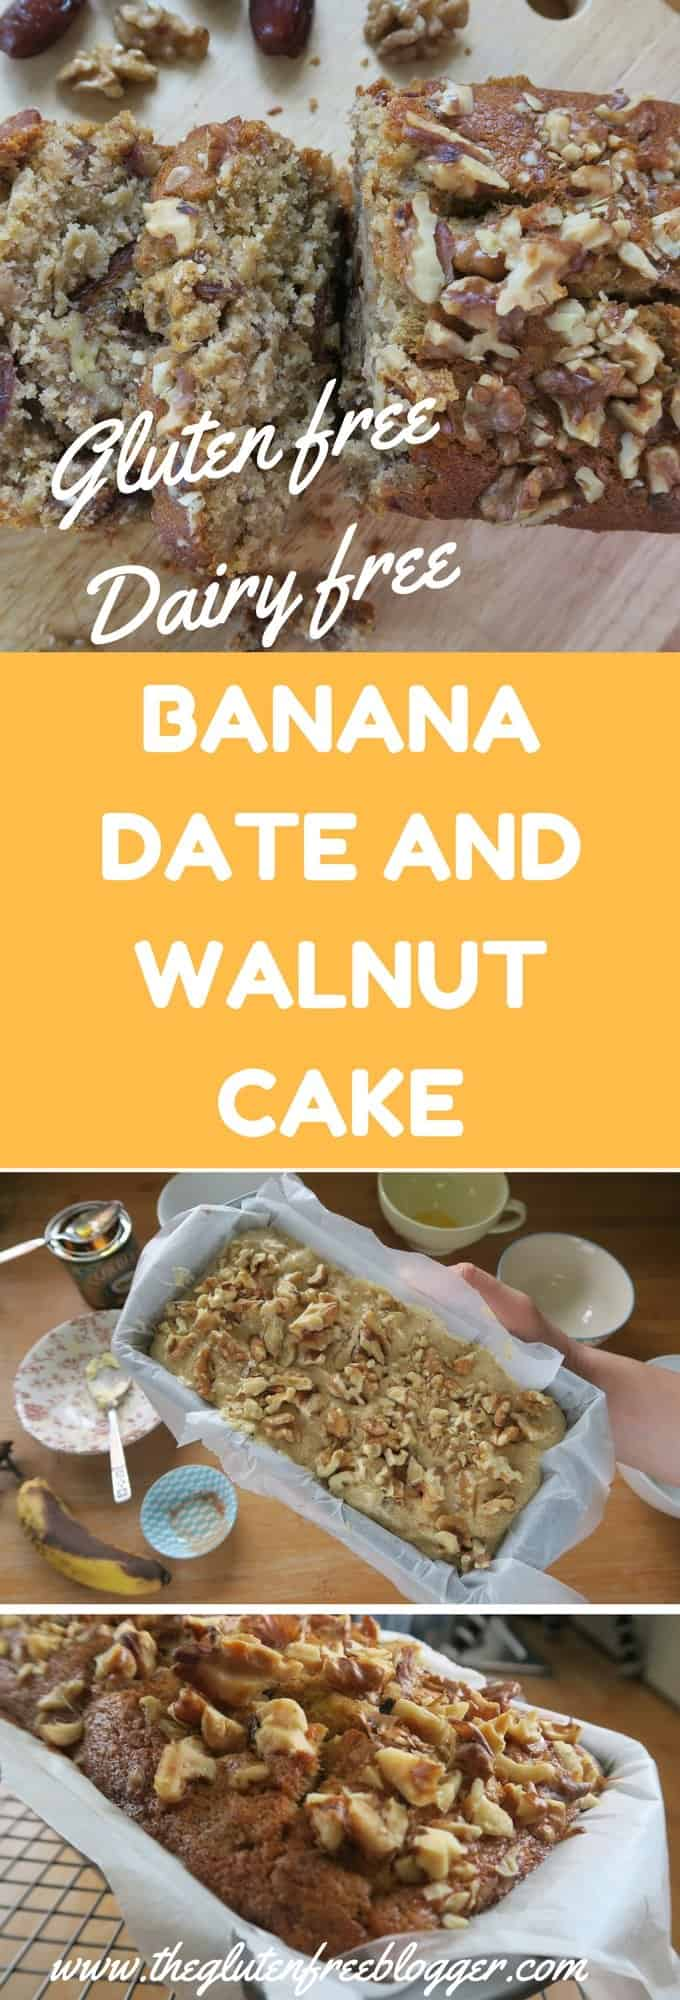 GLUTEN FREE & DAIRY FREE BANANA DATE AND WALNUT CAKE RECIPE FROM THE GLUTEN FREE BLOGGER - www.theglutenfreeblogger.com